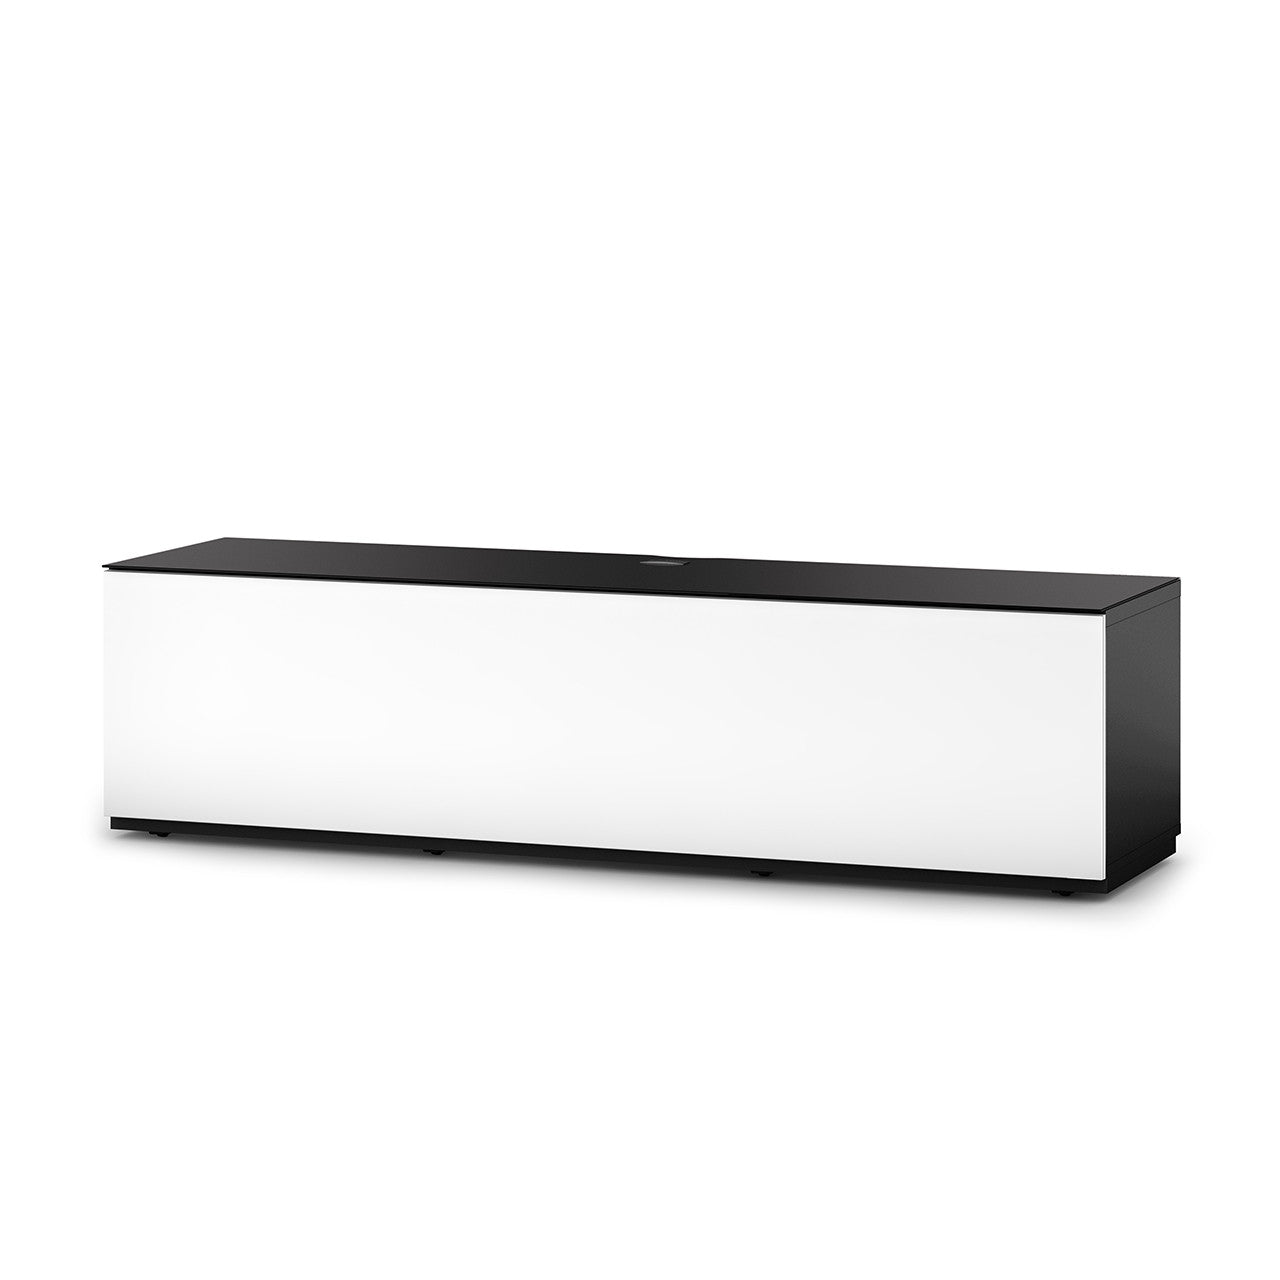 "Sonorous Studio ST160 Modern TV Stand w/ Hidden Wheels for TVs up to 75"" - Black / White Wood Cover"